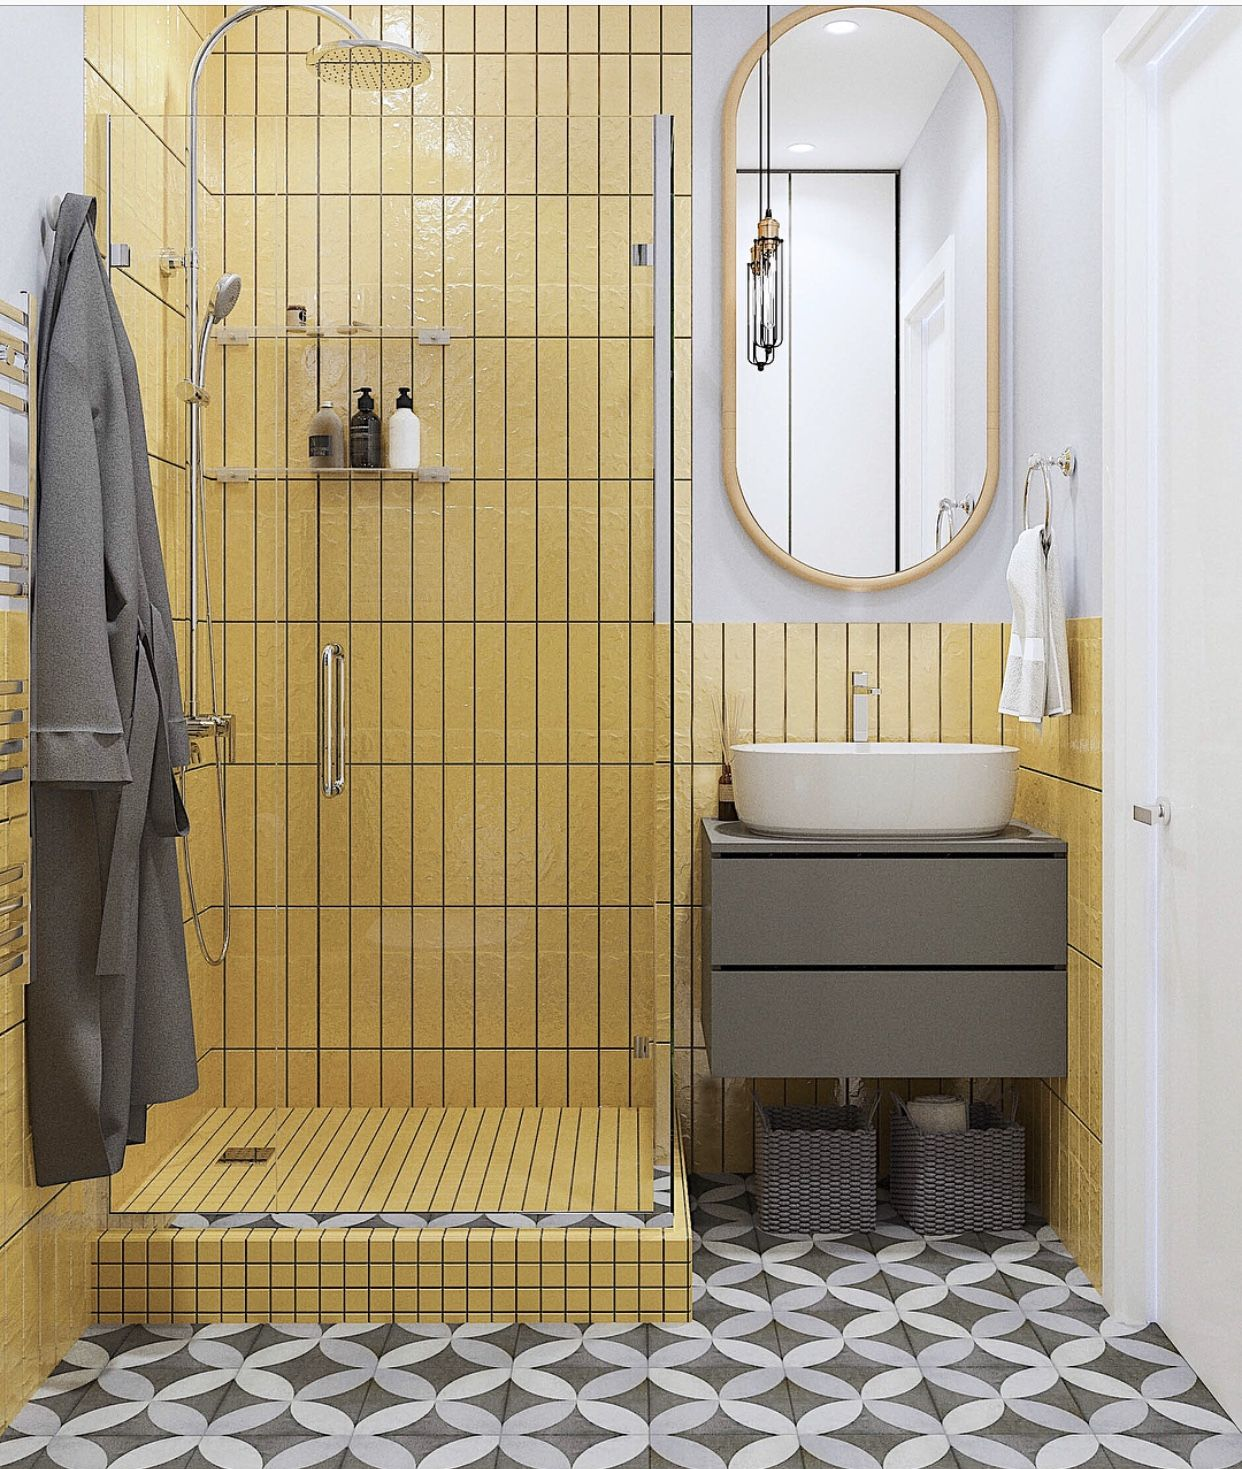 A yellow and monochrome pastel bathroom